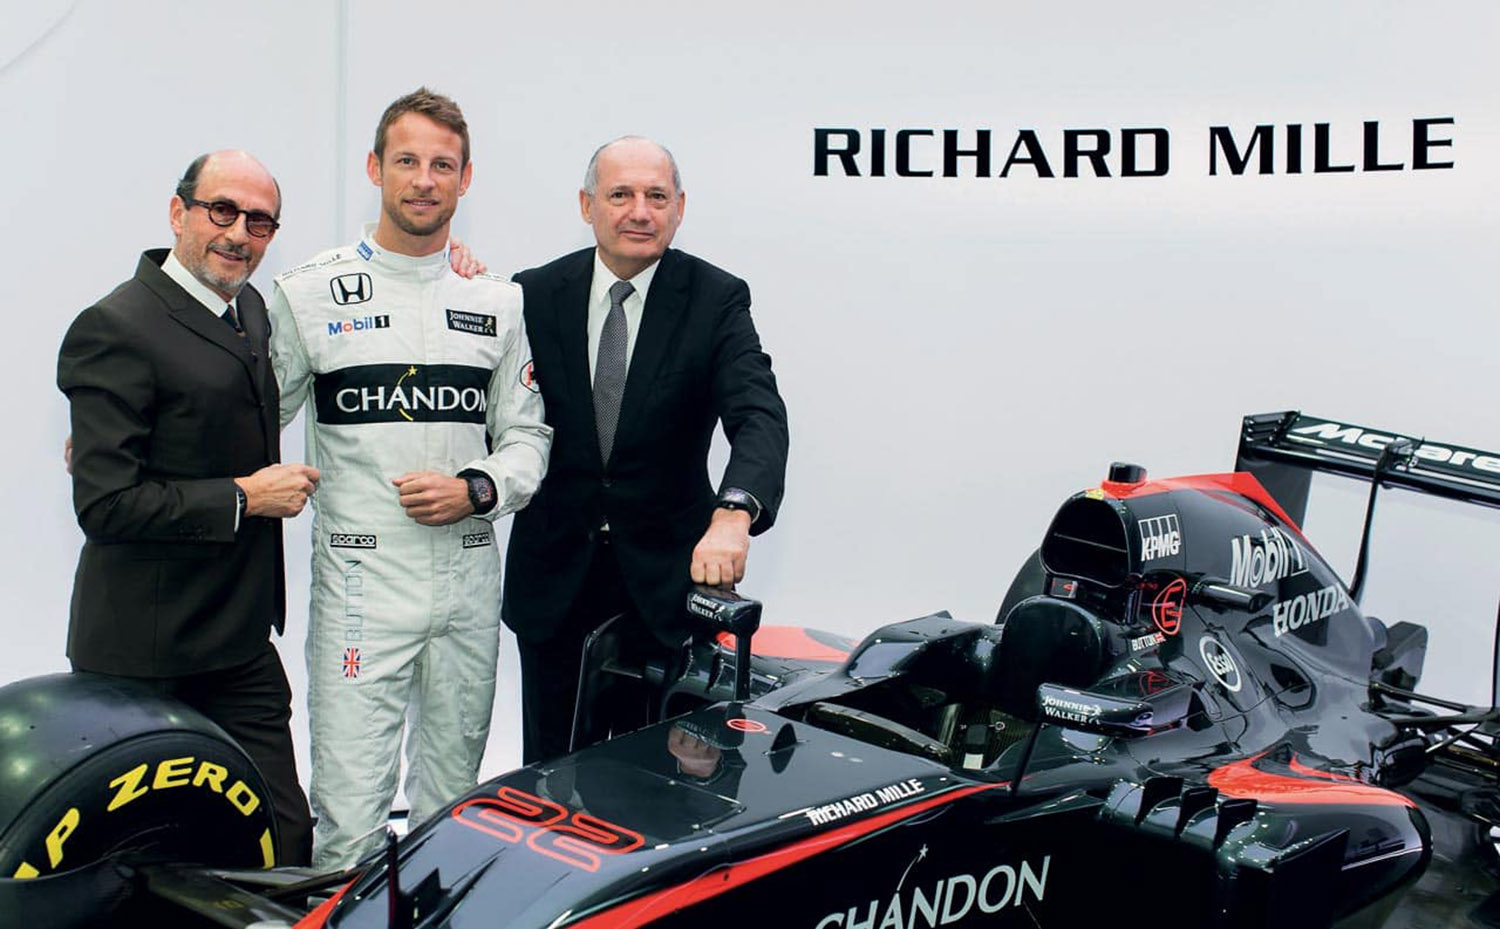 Richard_Mille_Jenseon_Button_Ron_Dennis_McLaren